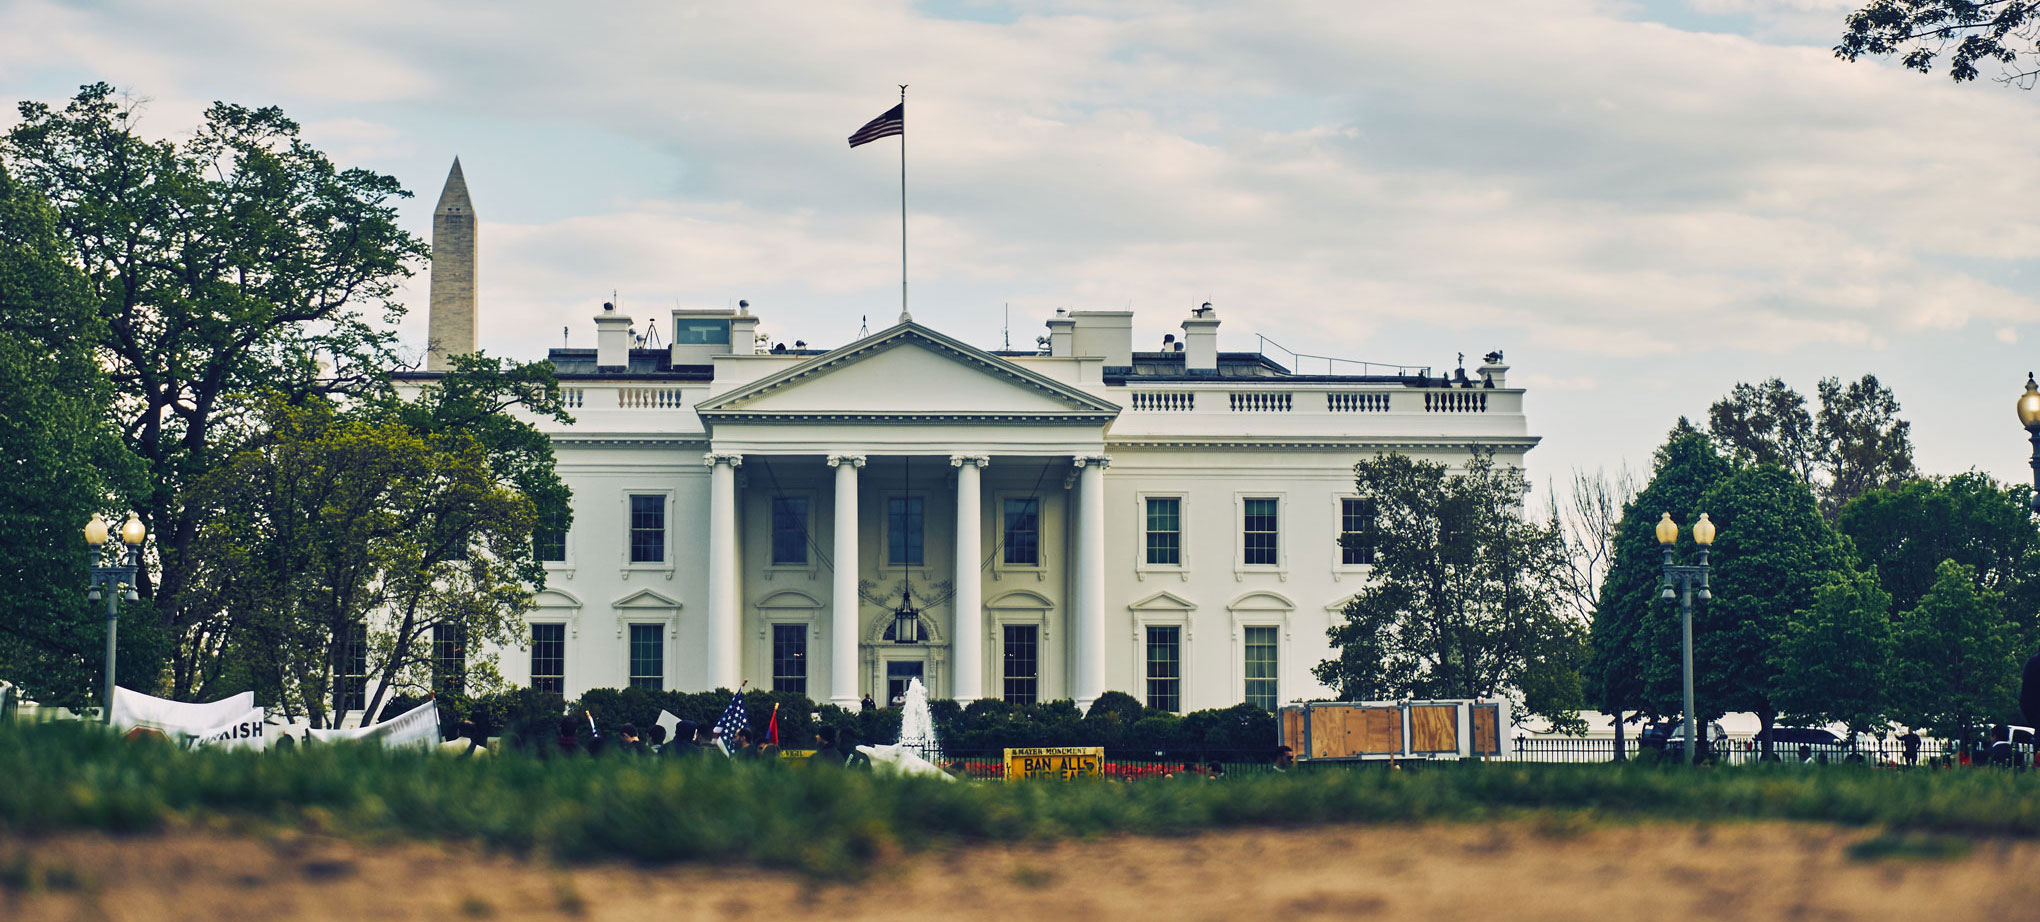 mega-theme-demo-white-house-1-cropped.jpg